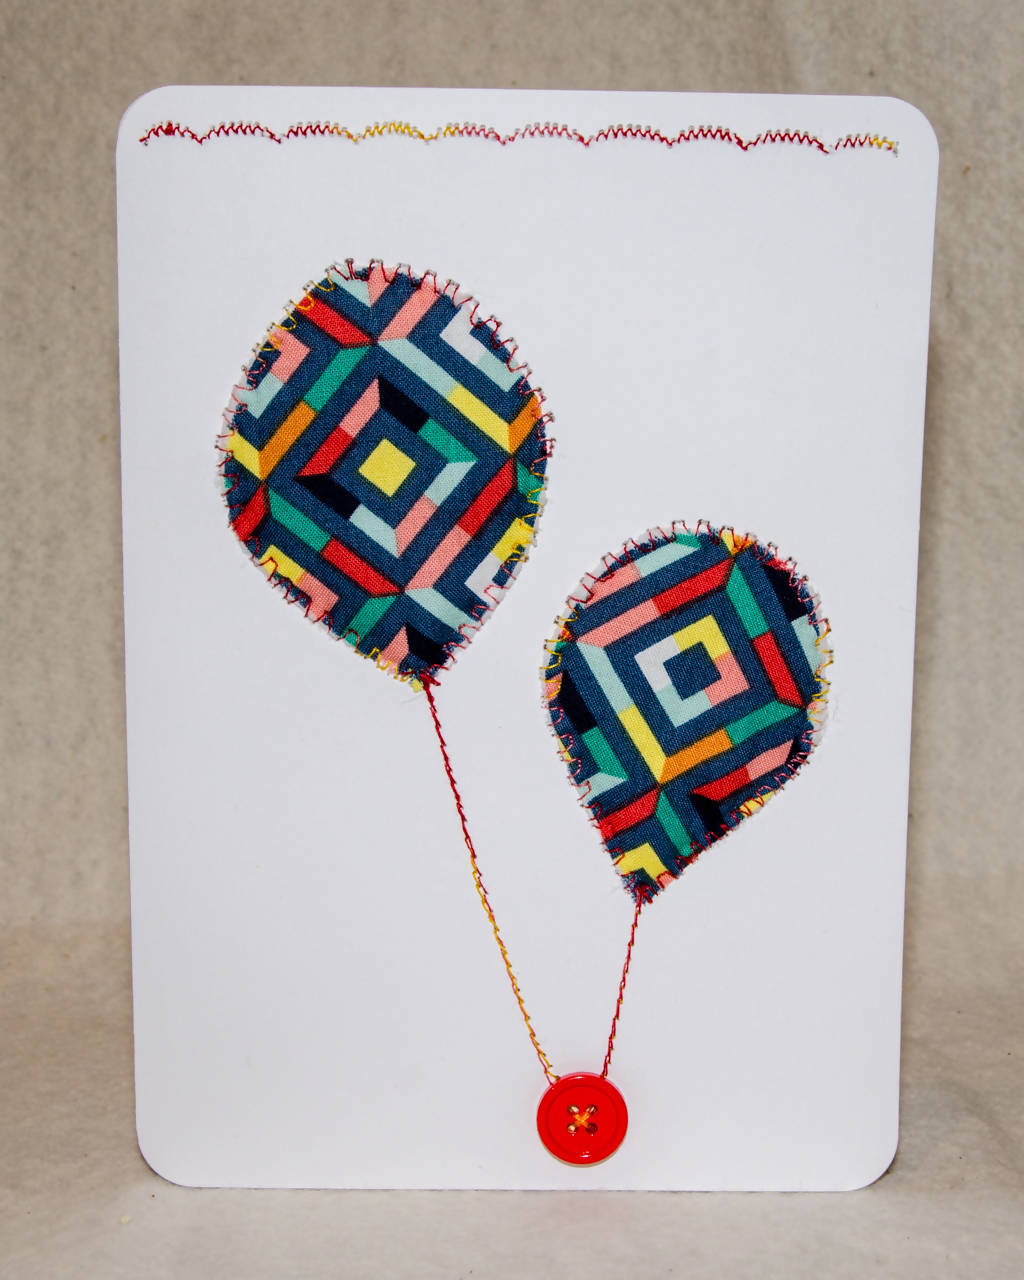 Balloons! Greeting Card - Handmade - Fabric and buttons on paper / Blank Inside